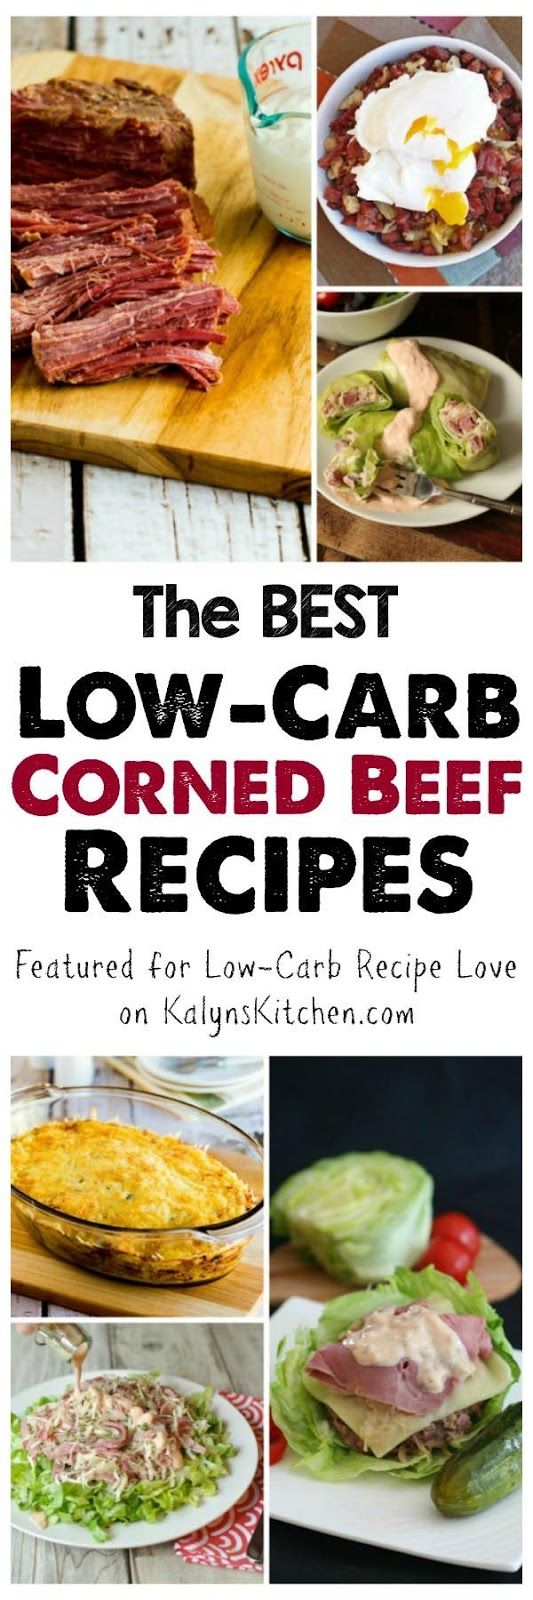 This collection of The BEST Low-Carb Corned Beef Recipes shows you how to cook corned beef, and also features creative and interesting ideas for using leftover corned beef!  [featured for Low-Carb Recipe Love on KalynsKitchen.com]